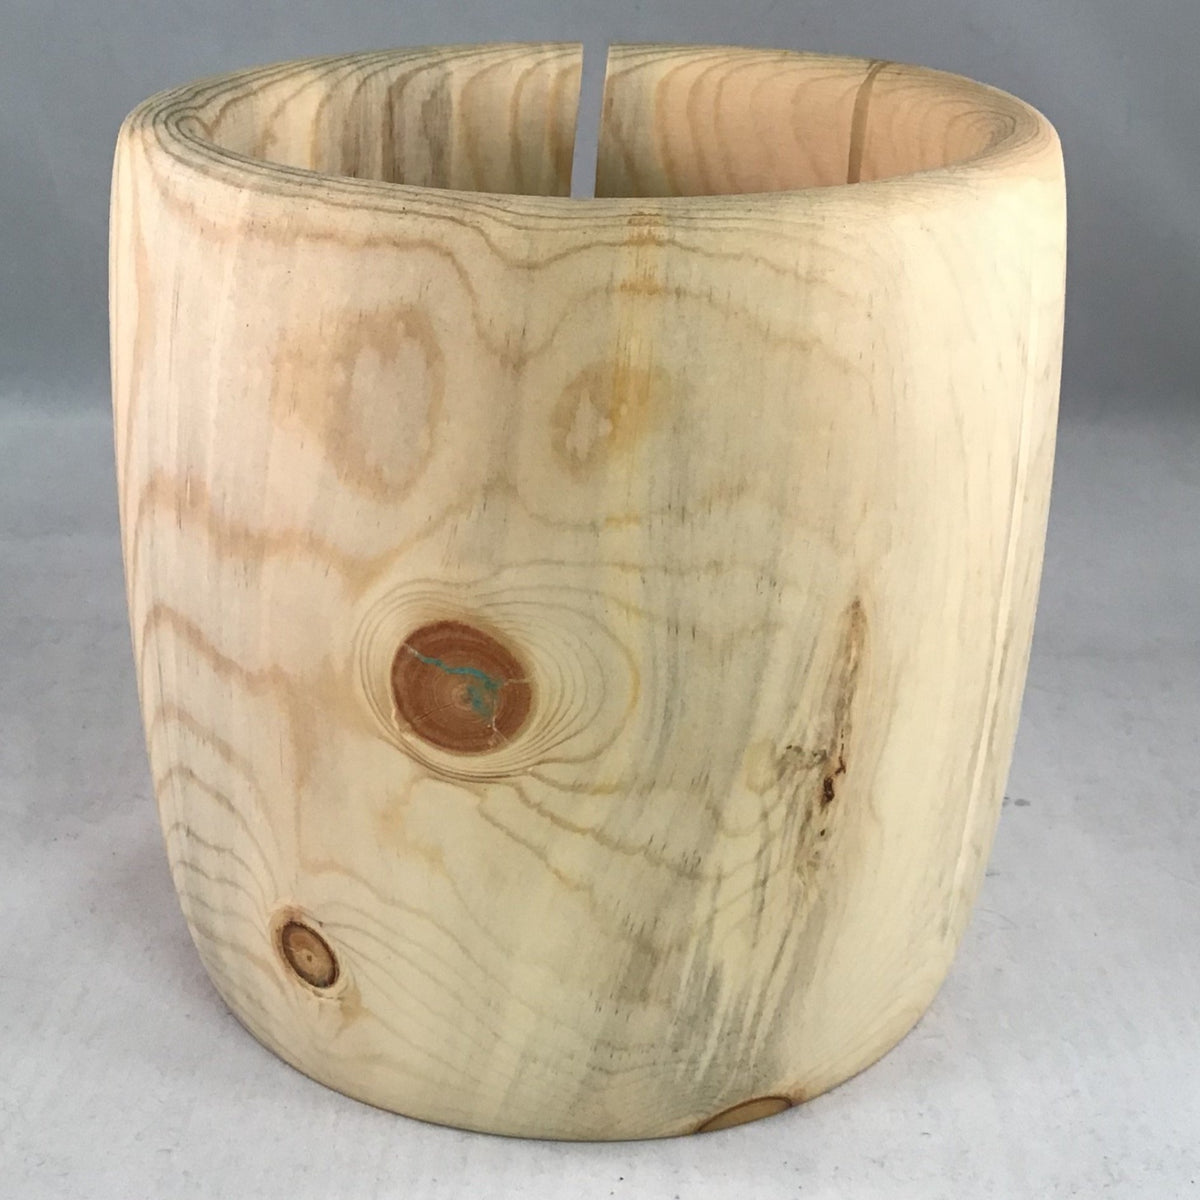 A wooden yarn bowl made from Pine Beetle kill wood against a white backdrop